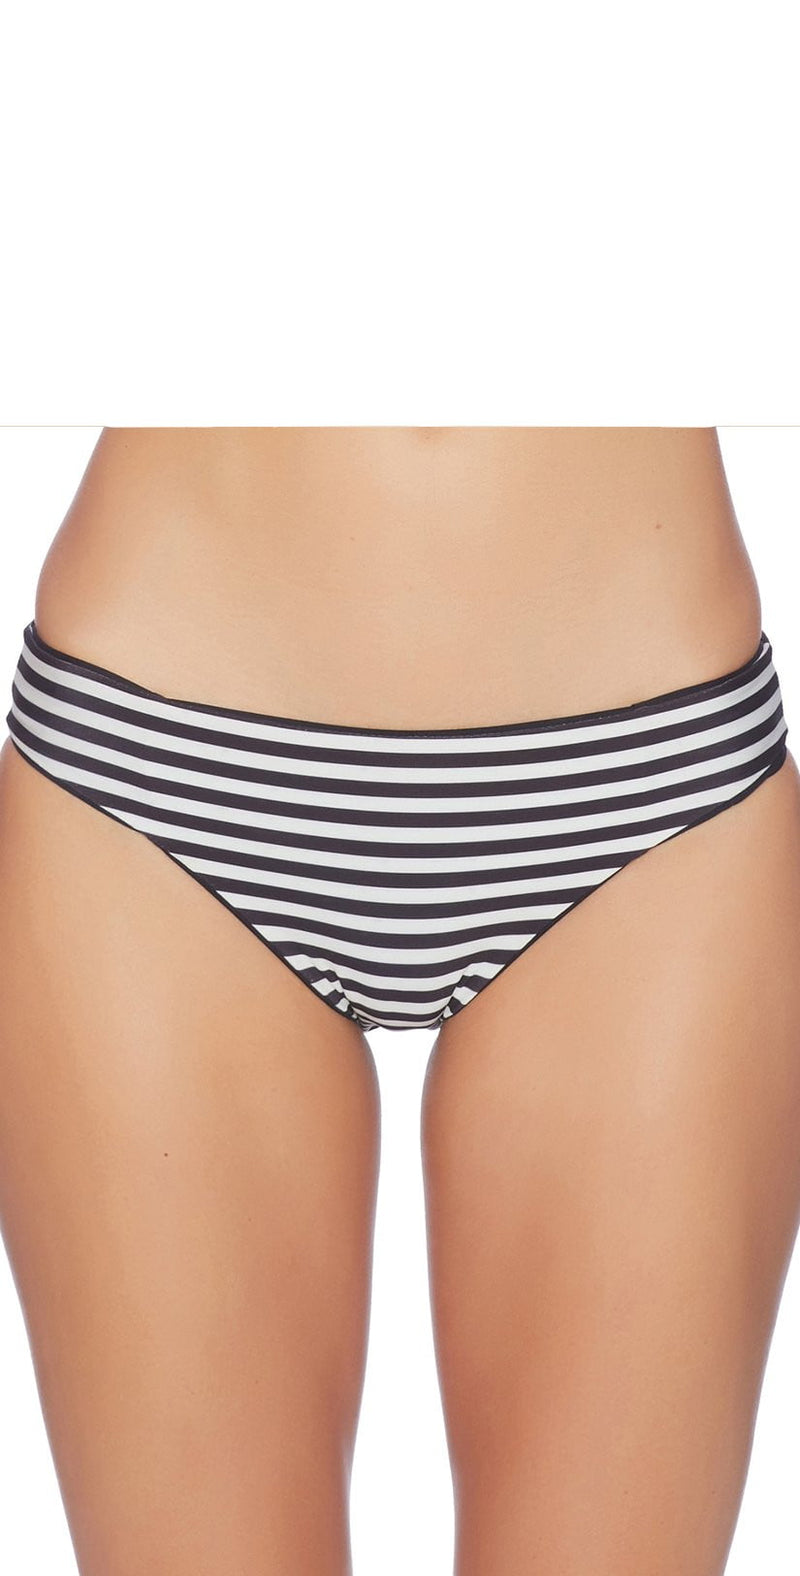 Splendid Itsy Ditsy Floret Reversible Bottom SP53358-BLW: